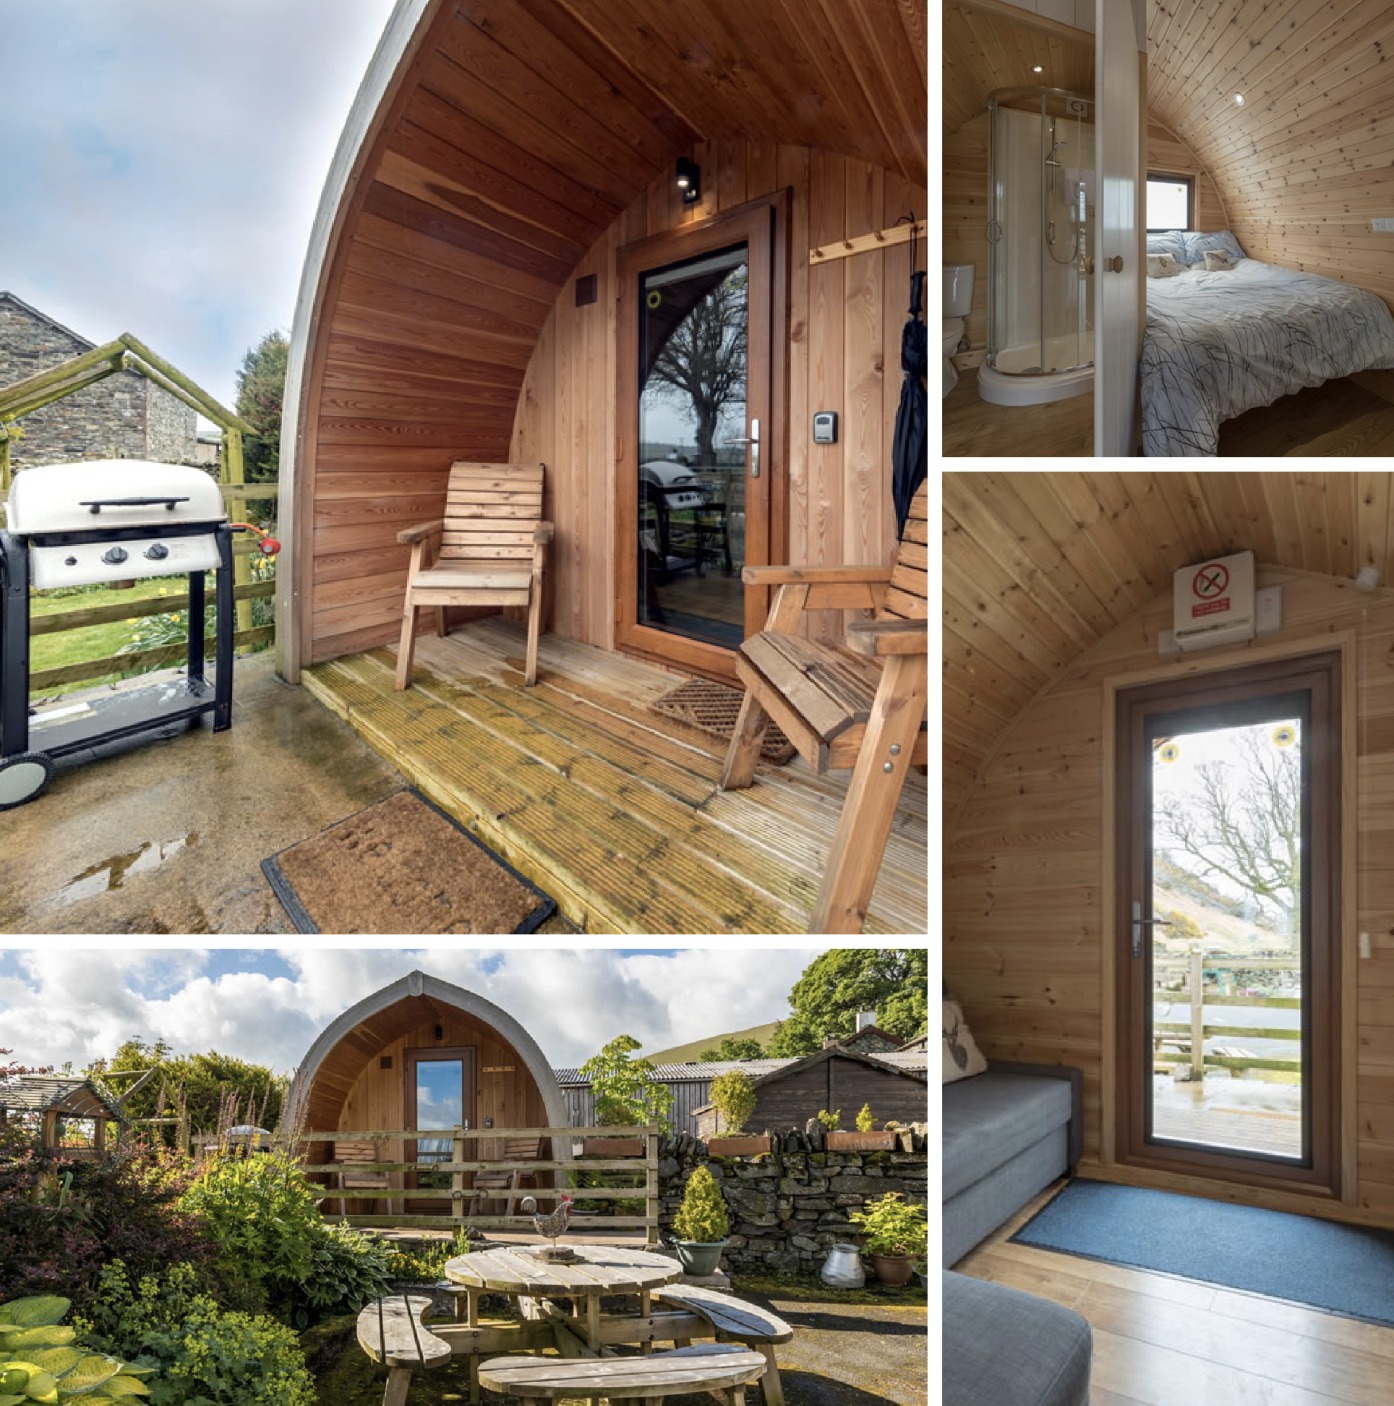 Well equipped Glamping Pod on a working farm in the rural north east corner of the beautiful Lake District